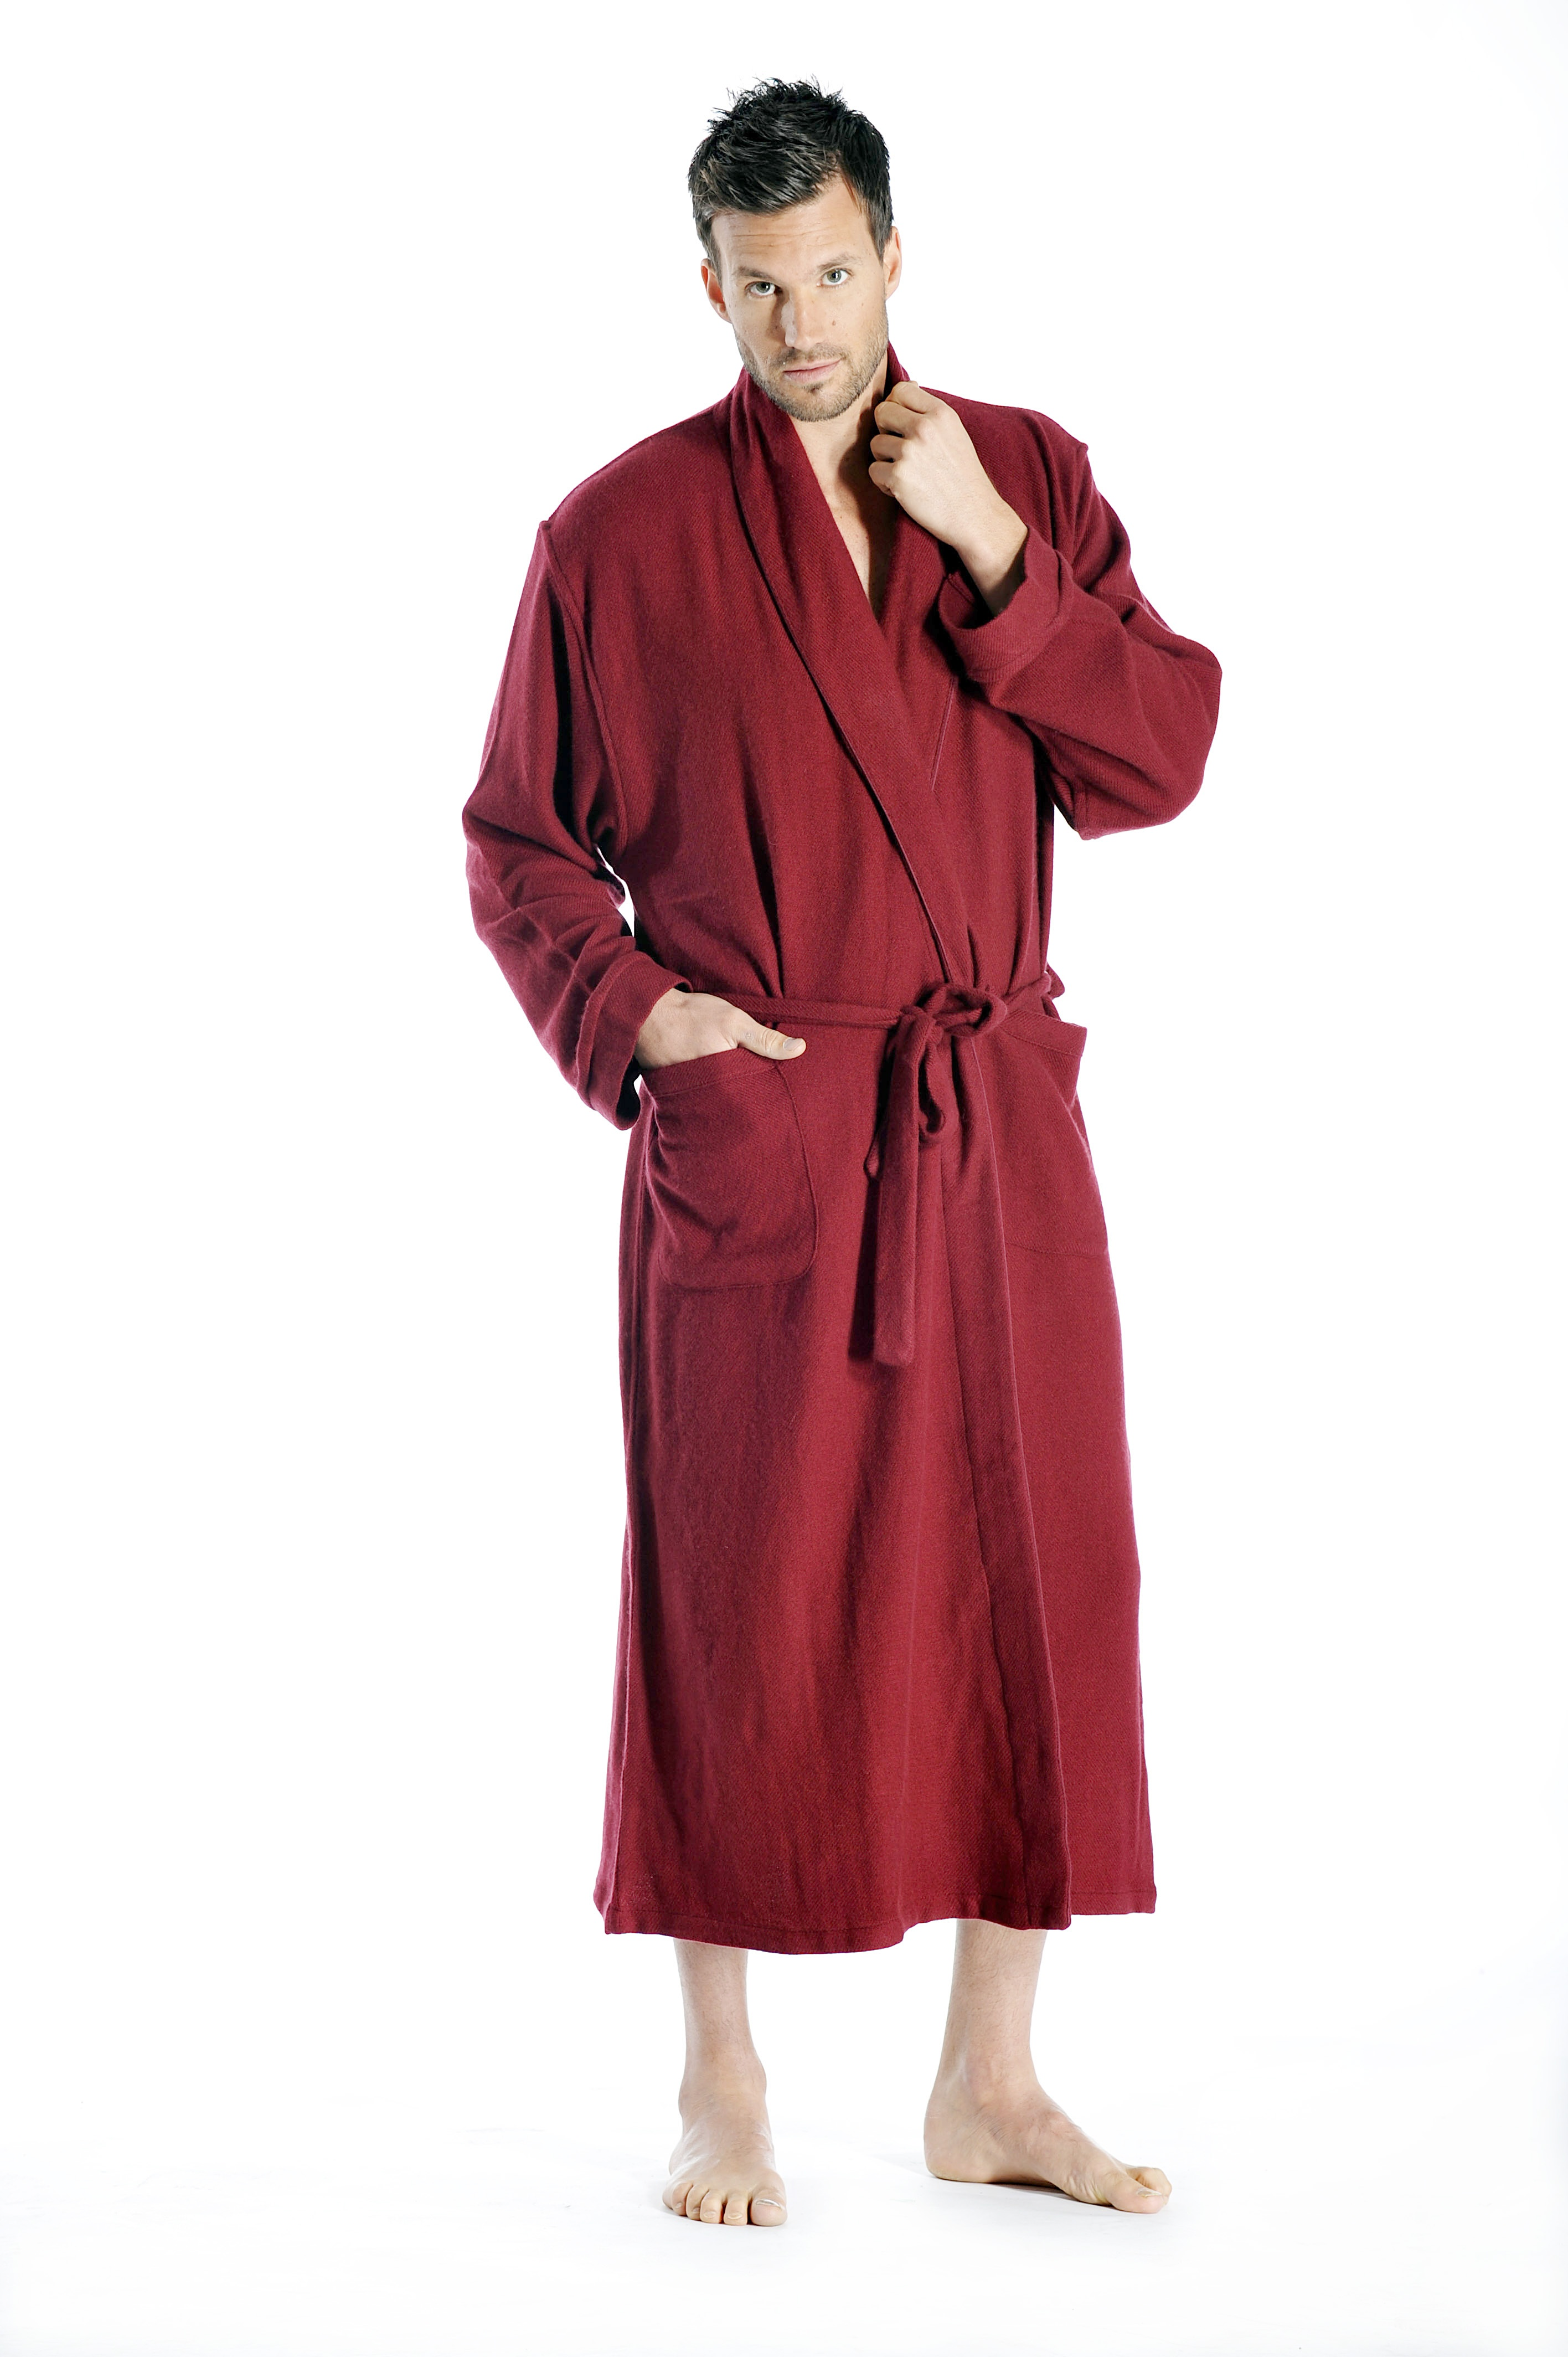 Cashmere Boutique Pure Cashmere Full Length Robe for Men at Sears.com